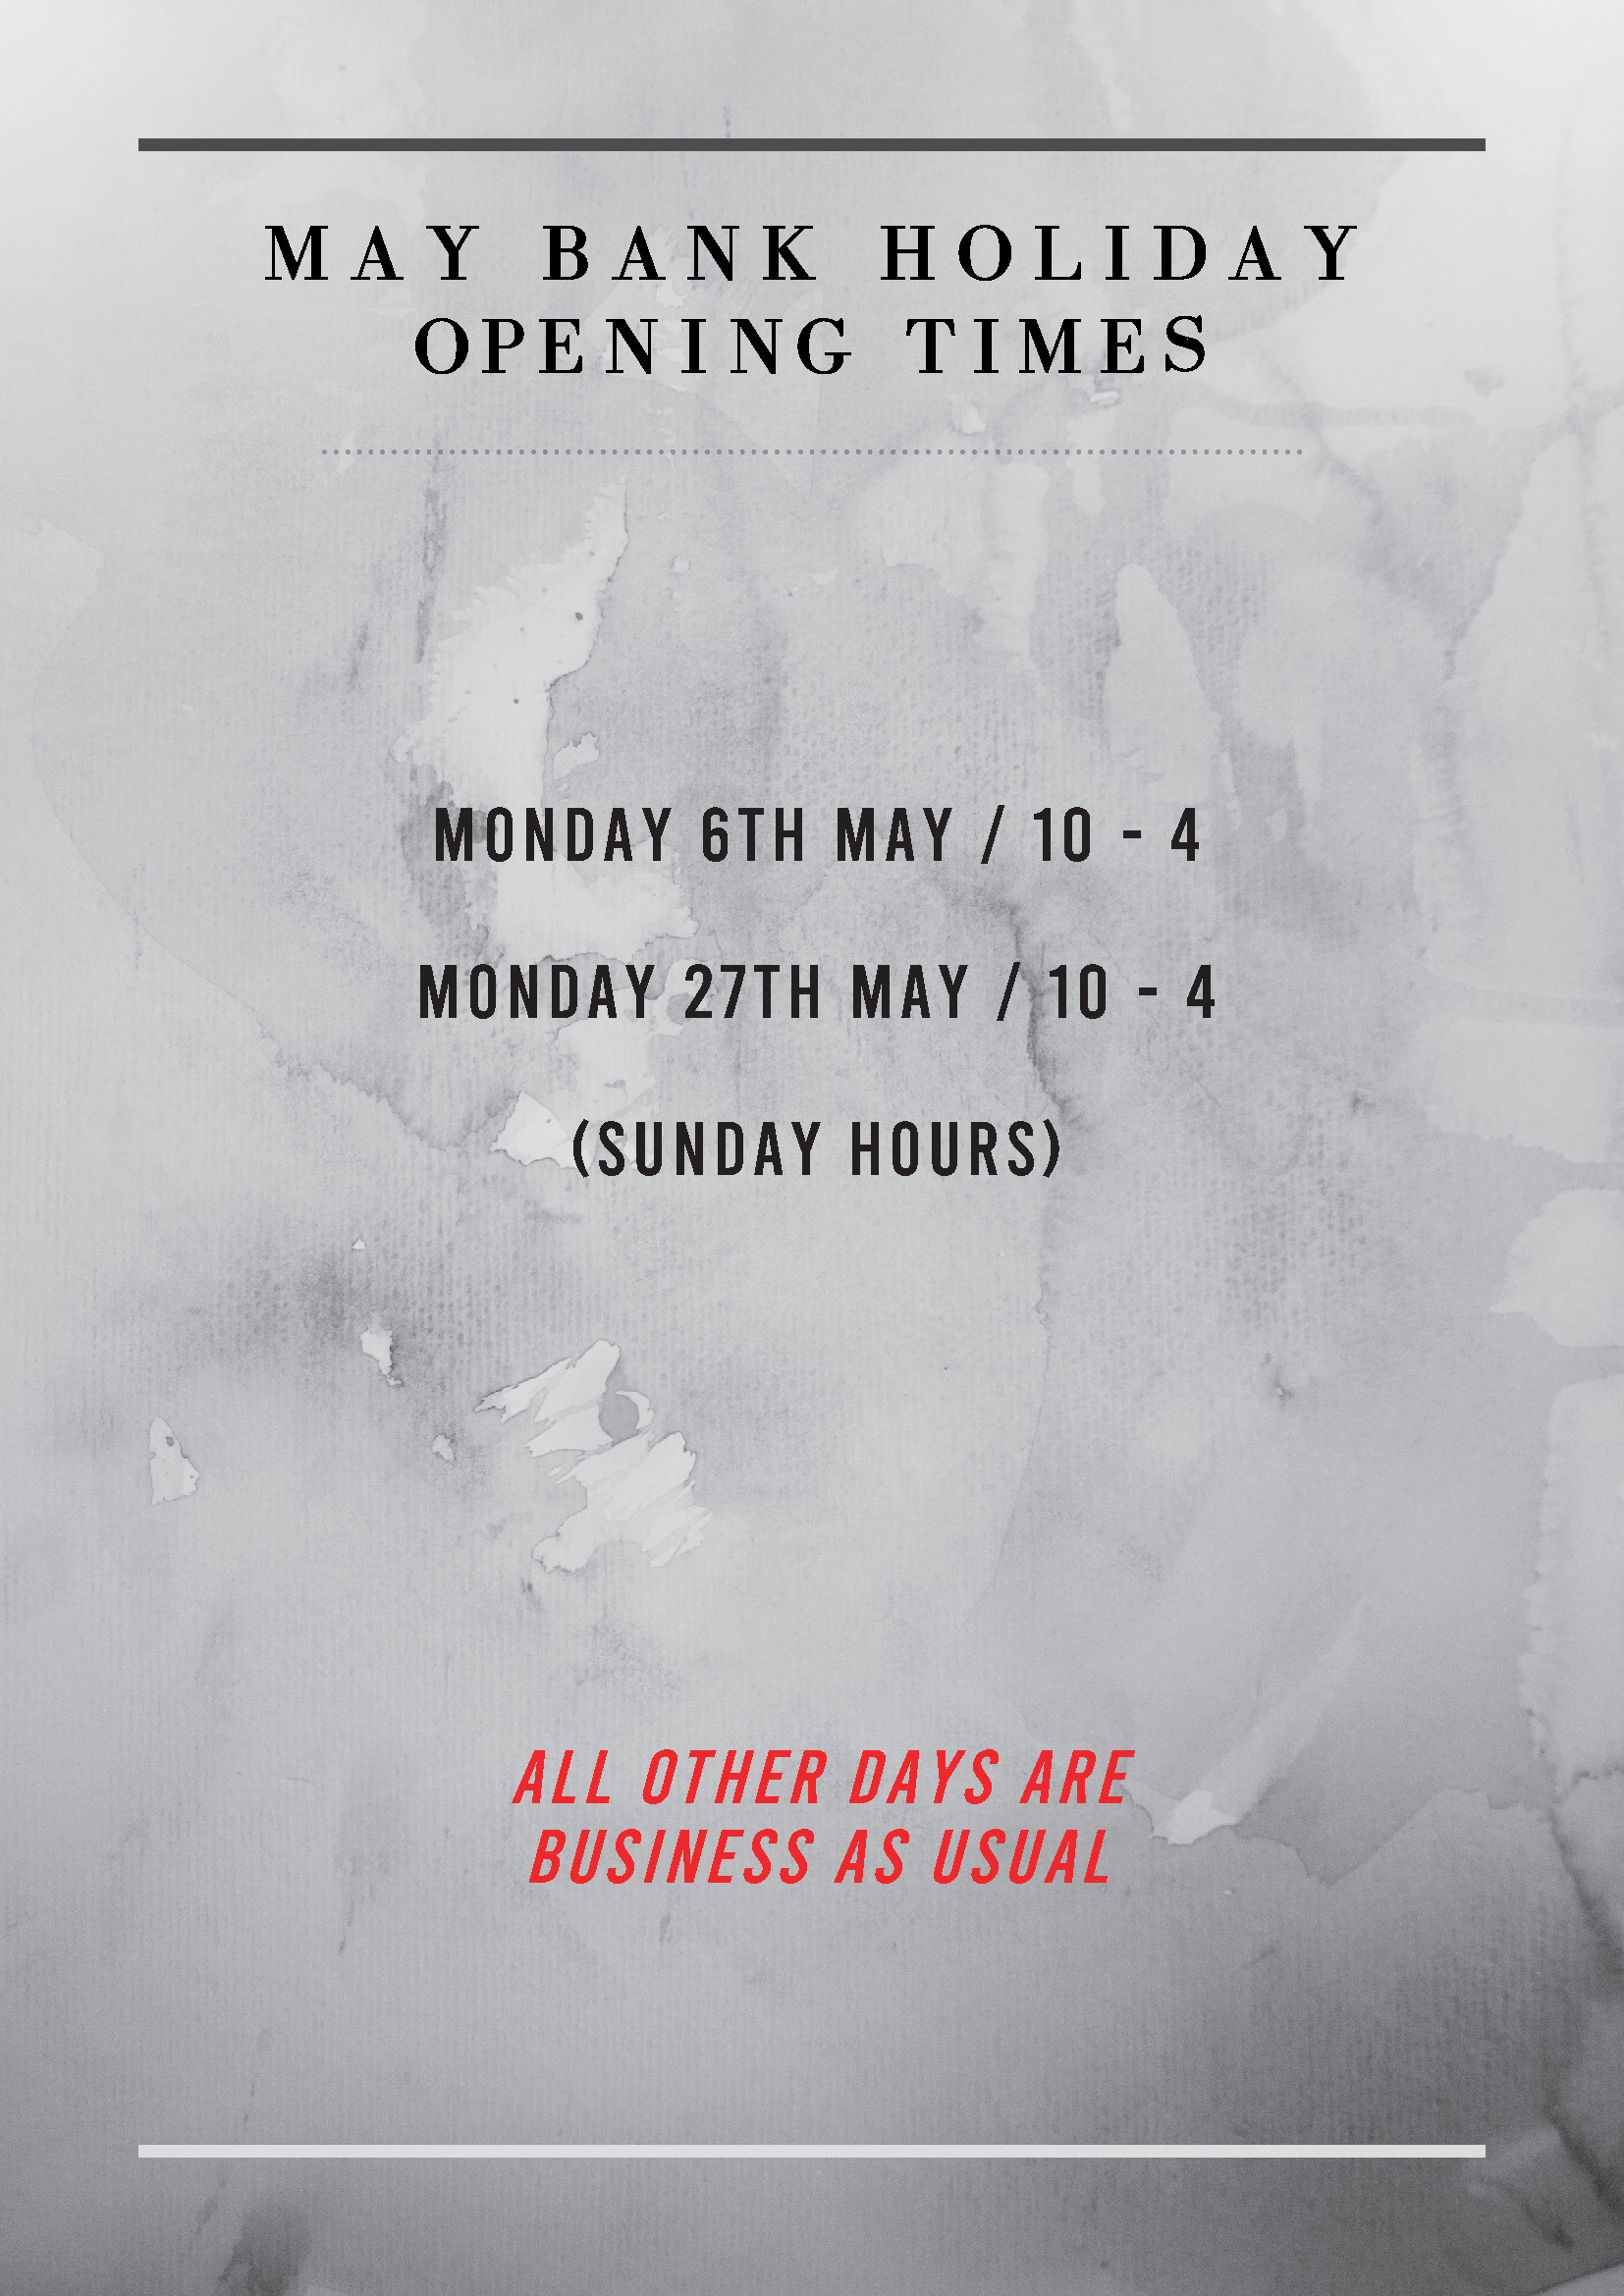 May Bank Holiday Opening Times